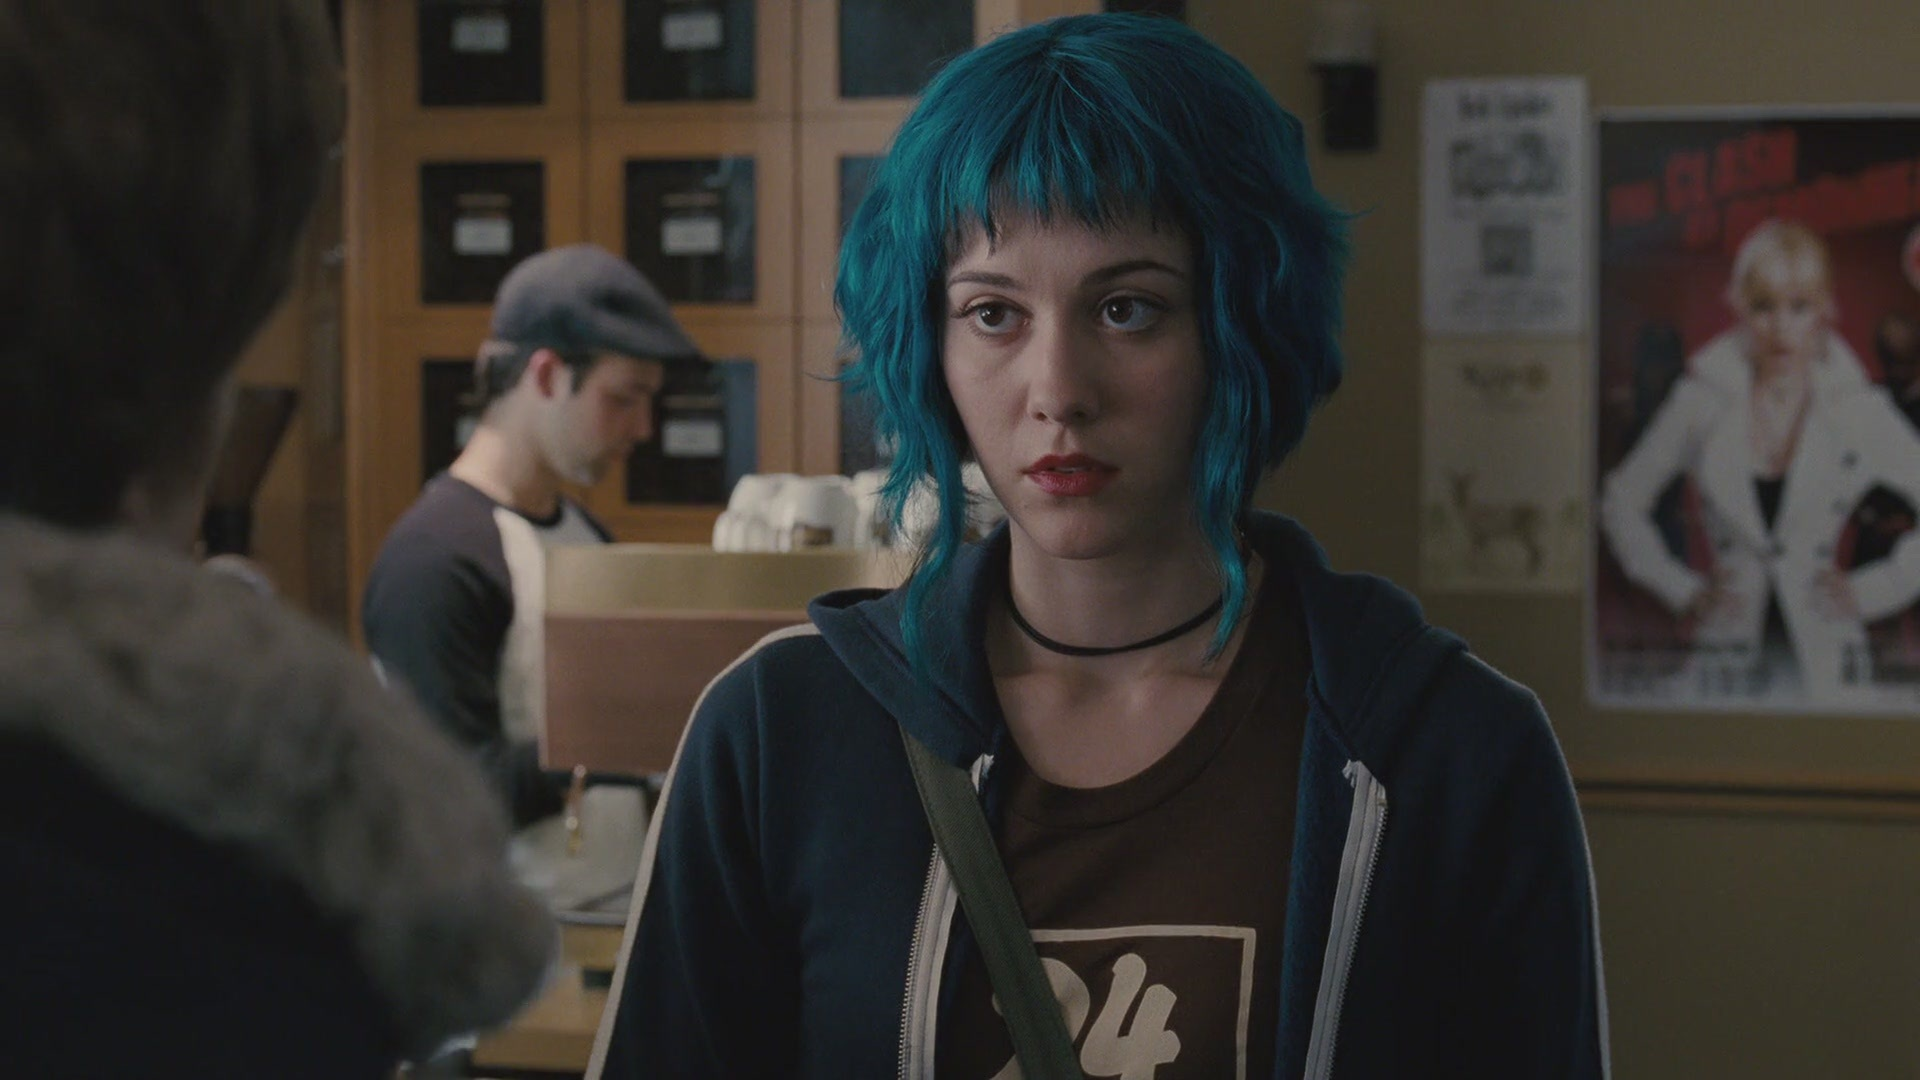 → REGISTRO: GRUPOS Scott-Pilgrim-v-s-the-world-movie-scott-pilgrim-21820657-1920-1080